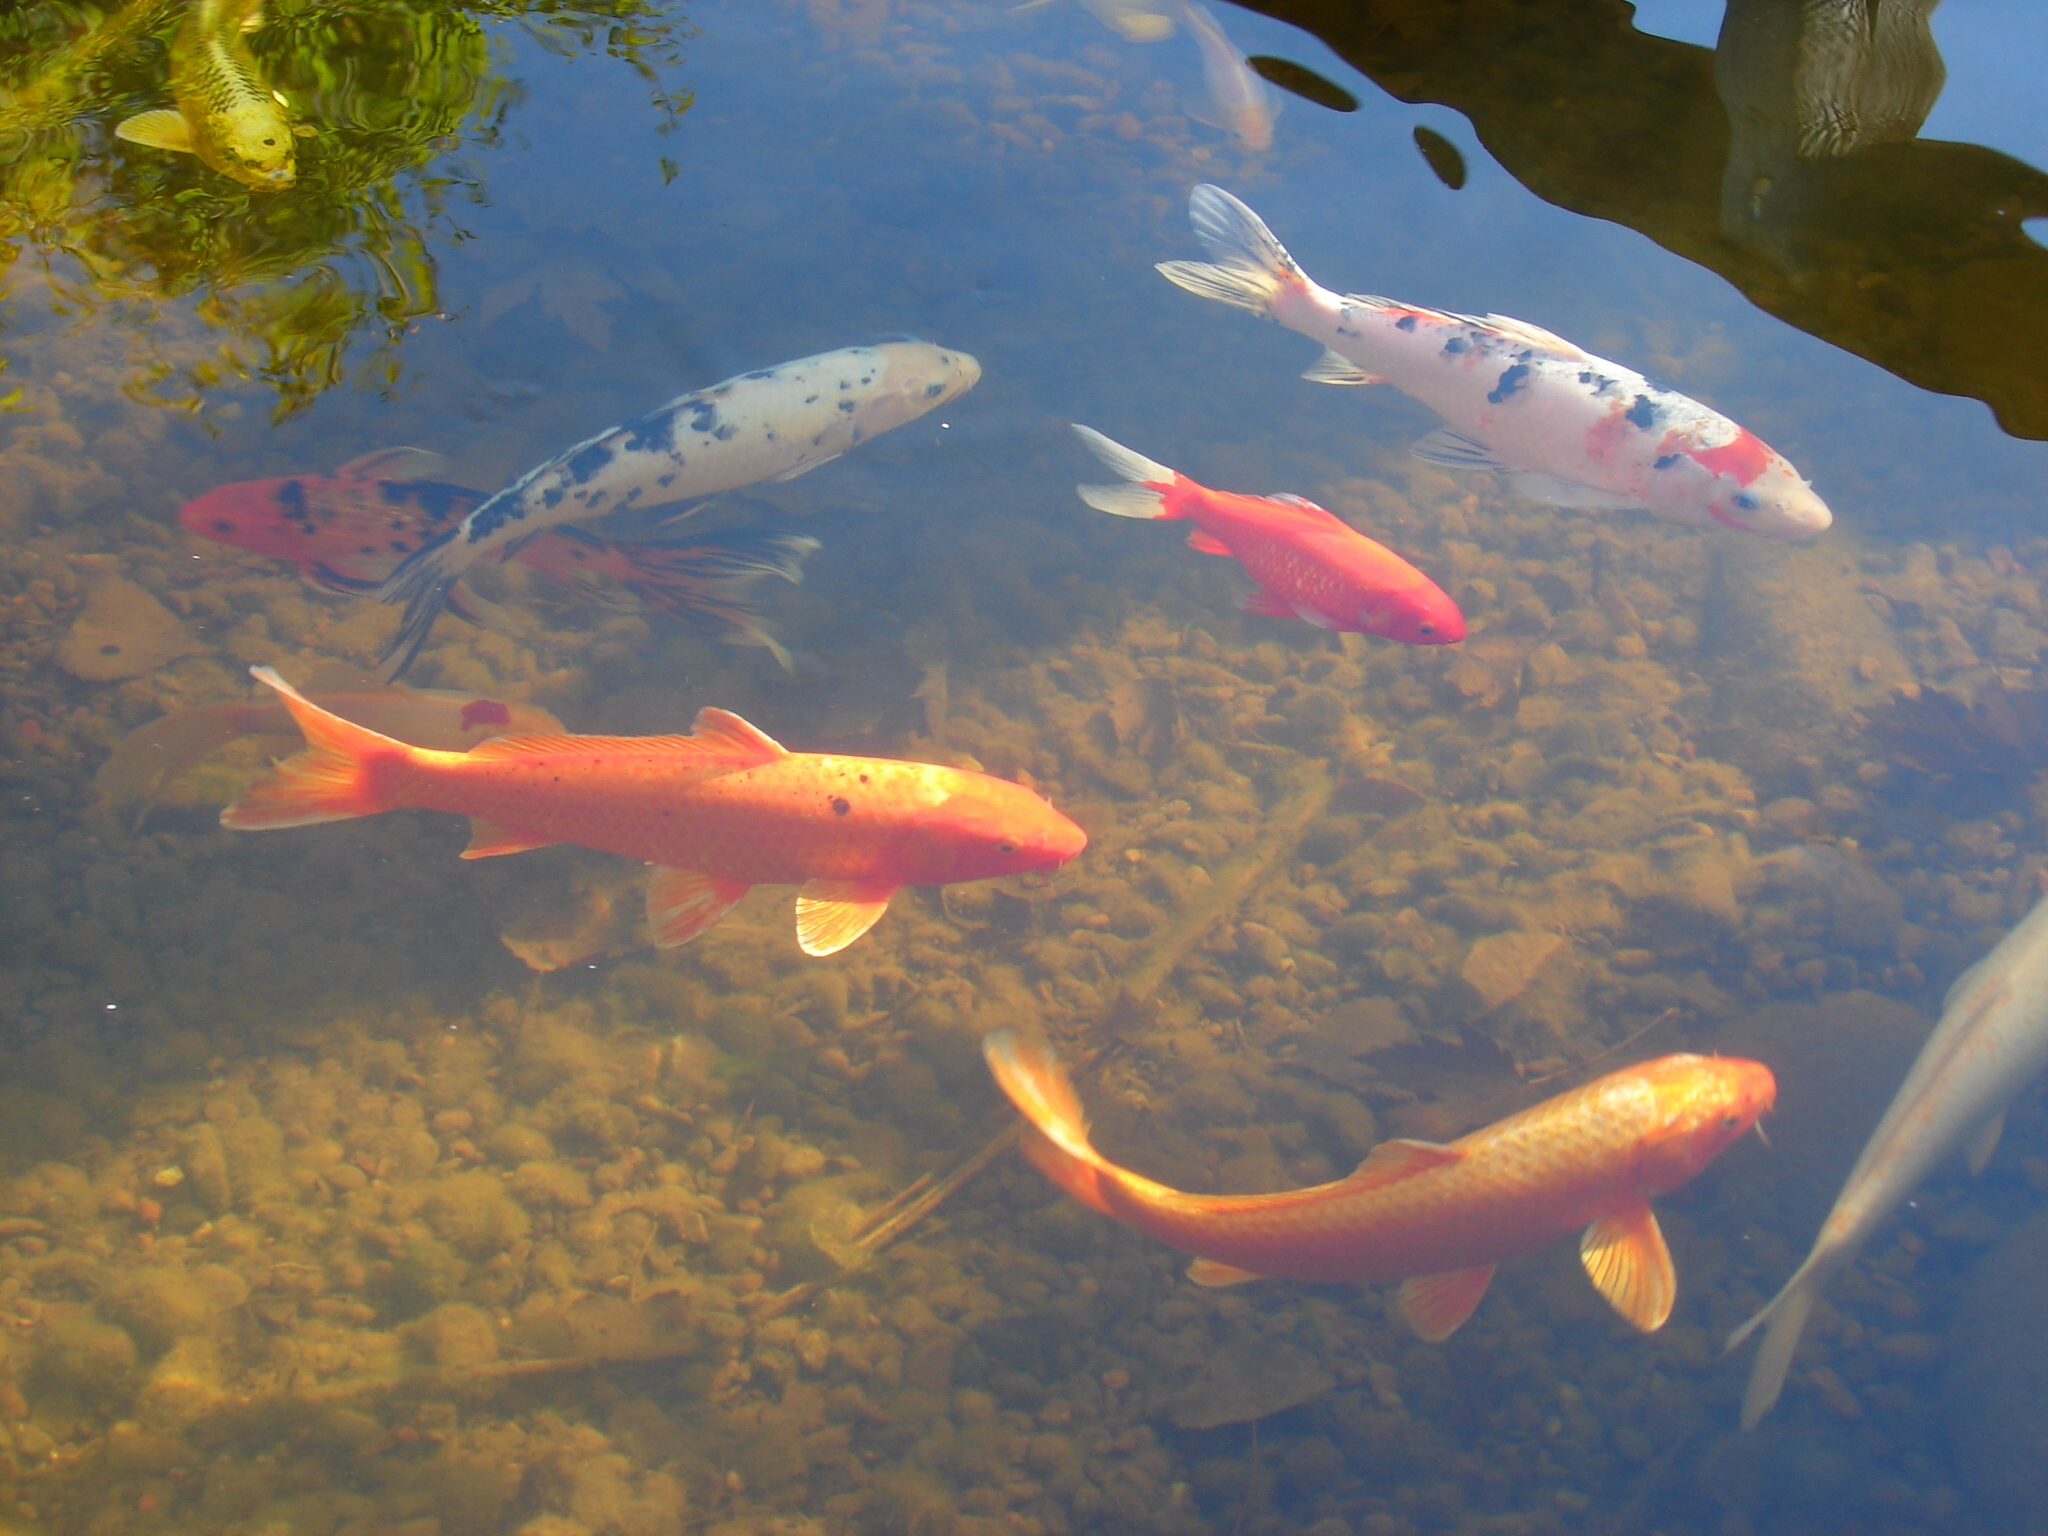 Nishikigoi koi carp fish 4 by fantasystock on deviantart for Purchase koi fish